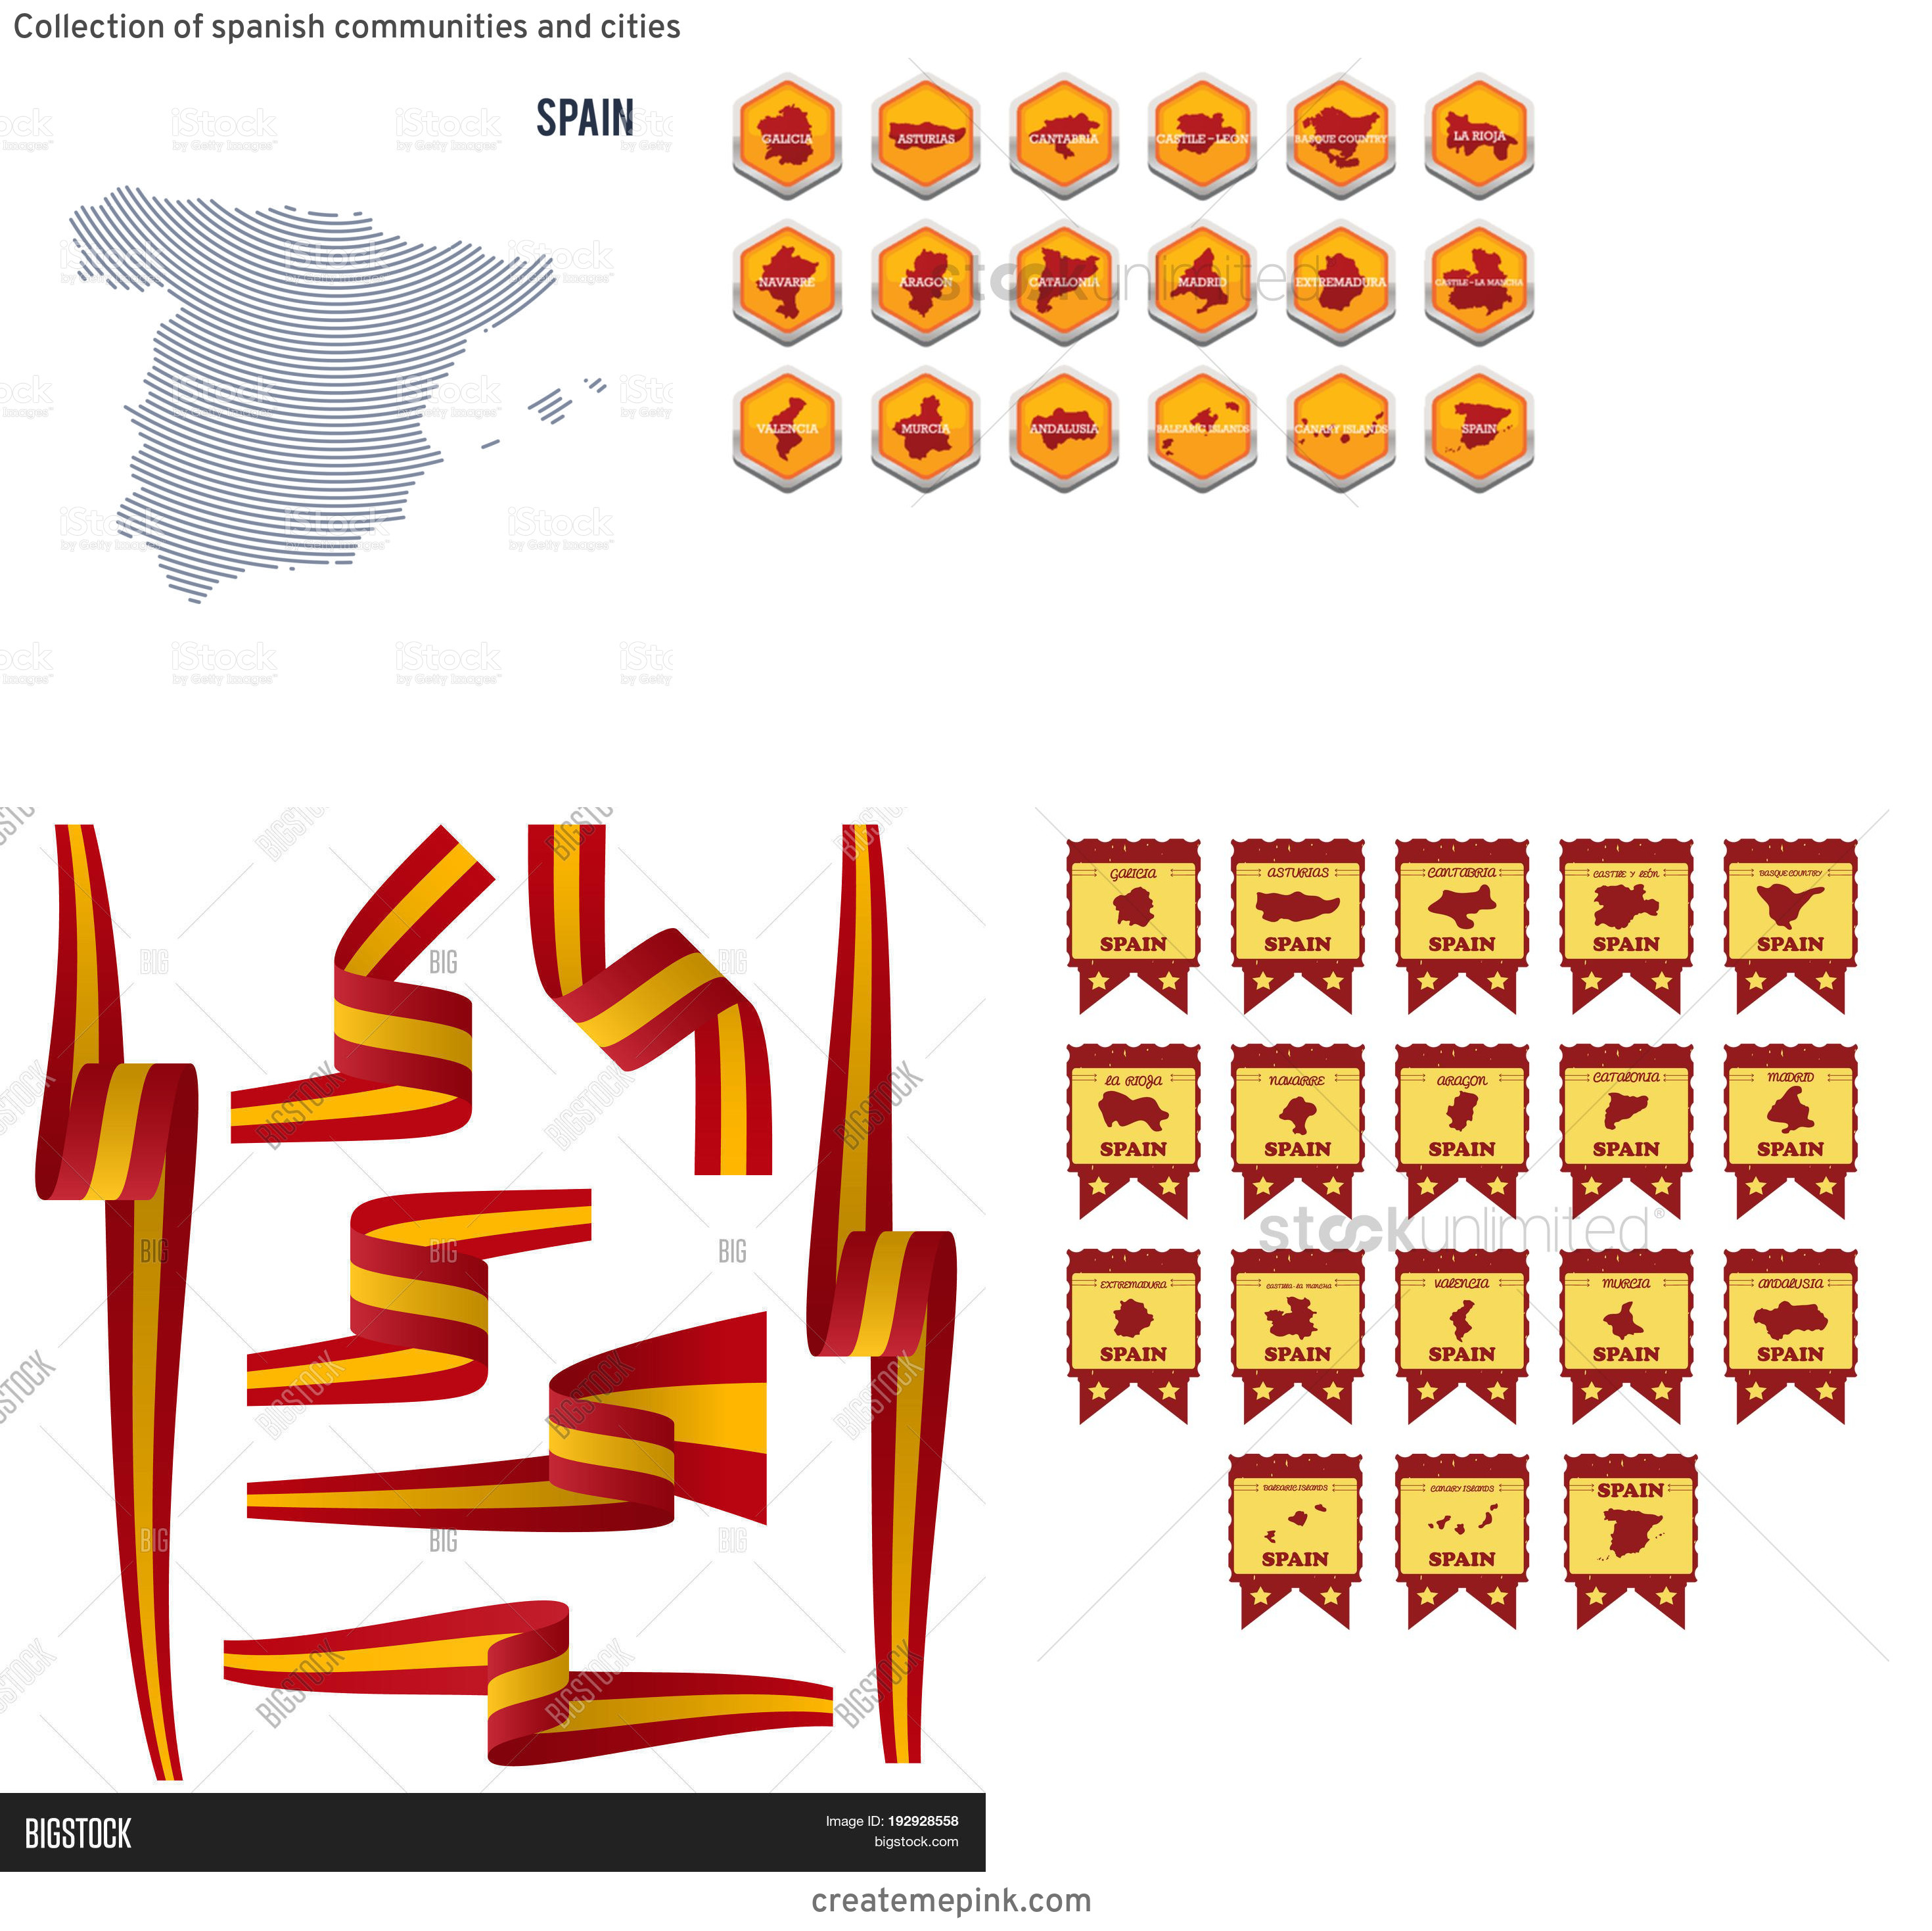 Spain Country Vectors Line: Collection Of Spanish Communities And Cities